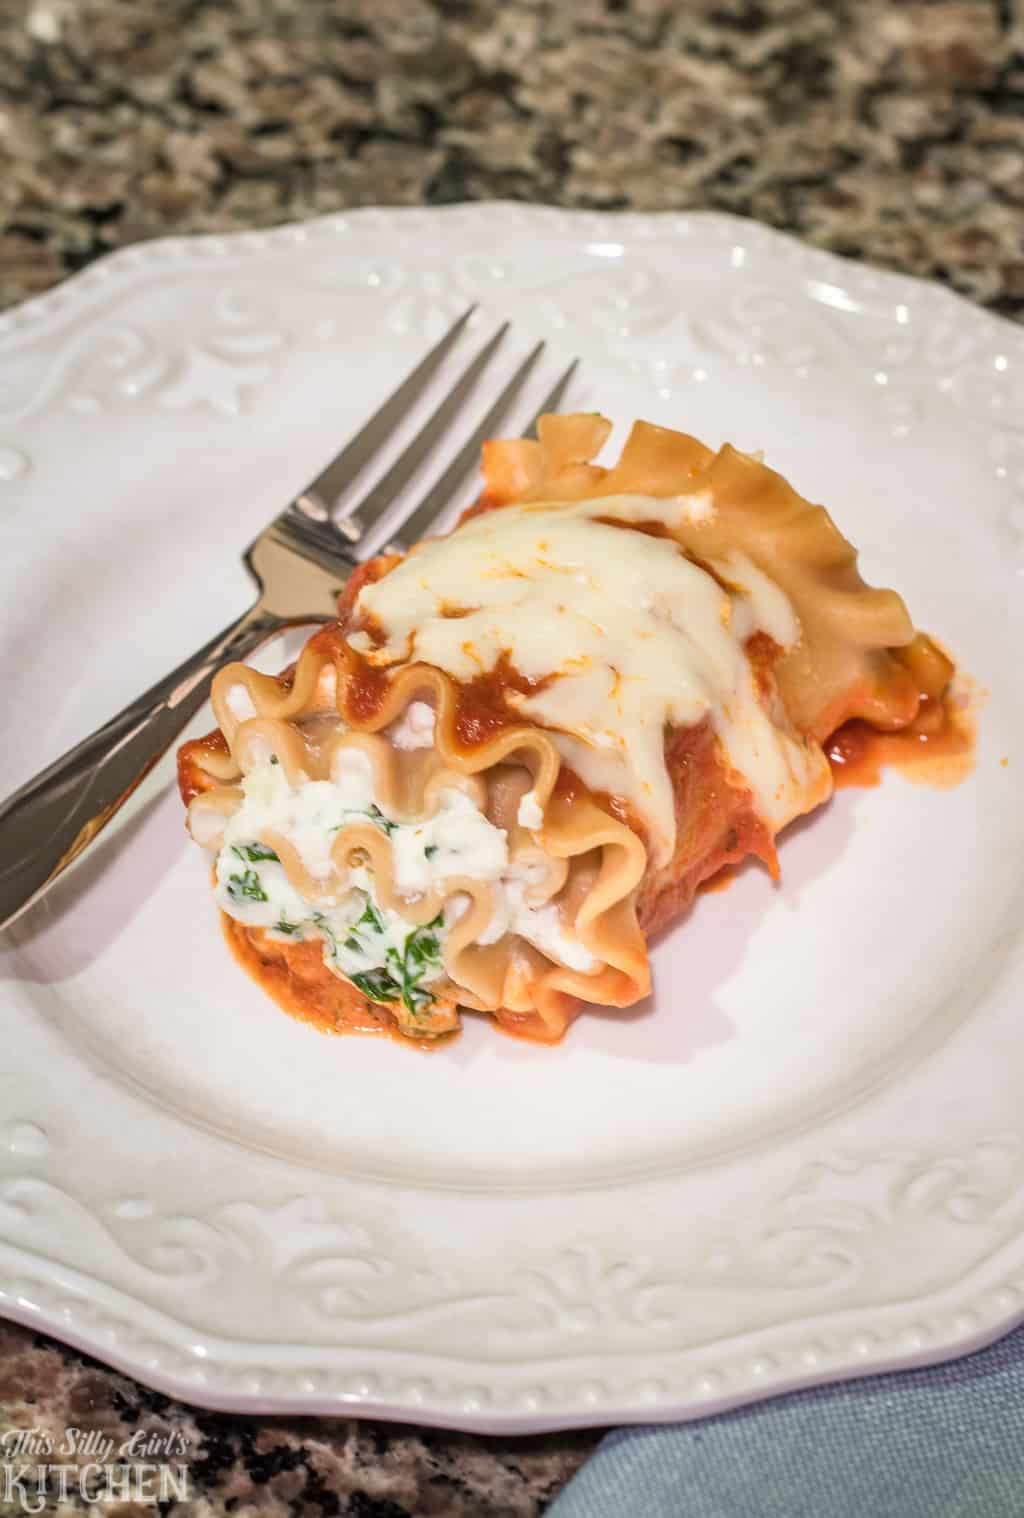 Skinny Lasagna Rolls, little packages filled with ricotta cheese and sauteed kale, a lightened up recipe full of flavor! #Recipe from ThisSillyGirlsKitchen.com #lasagna #skinny #lasagnarolls